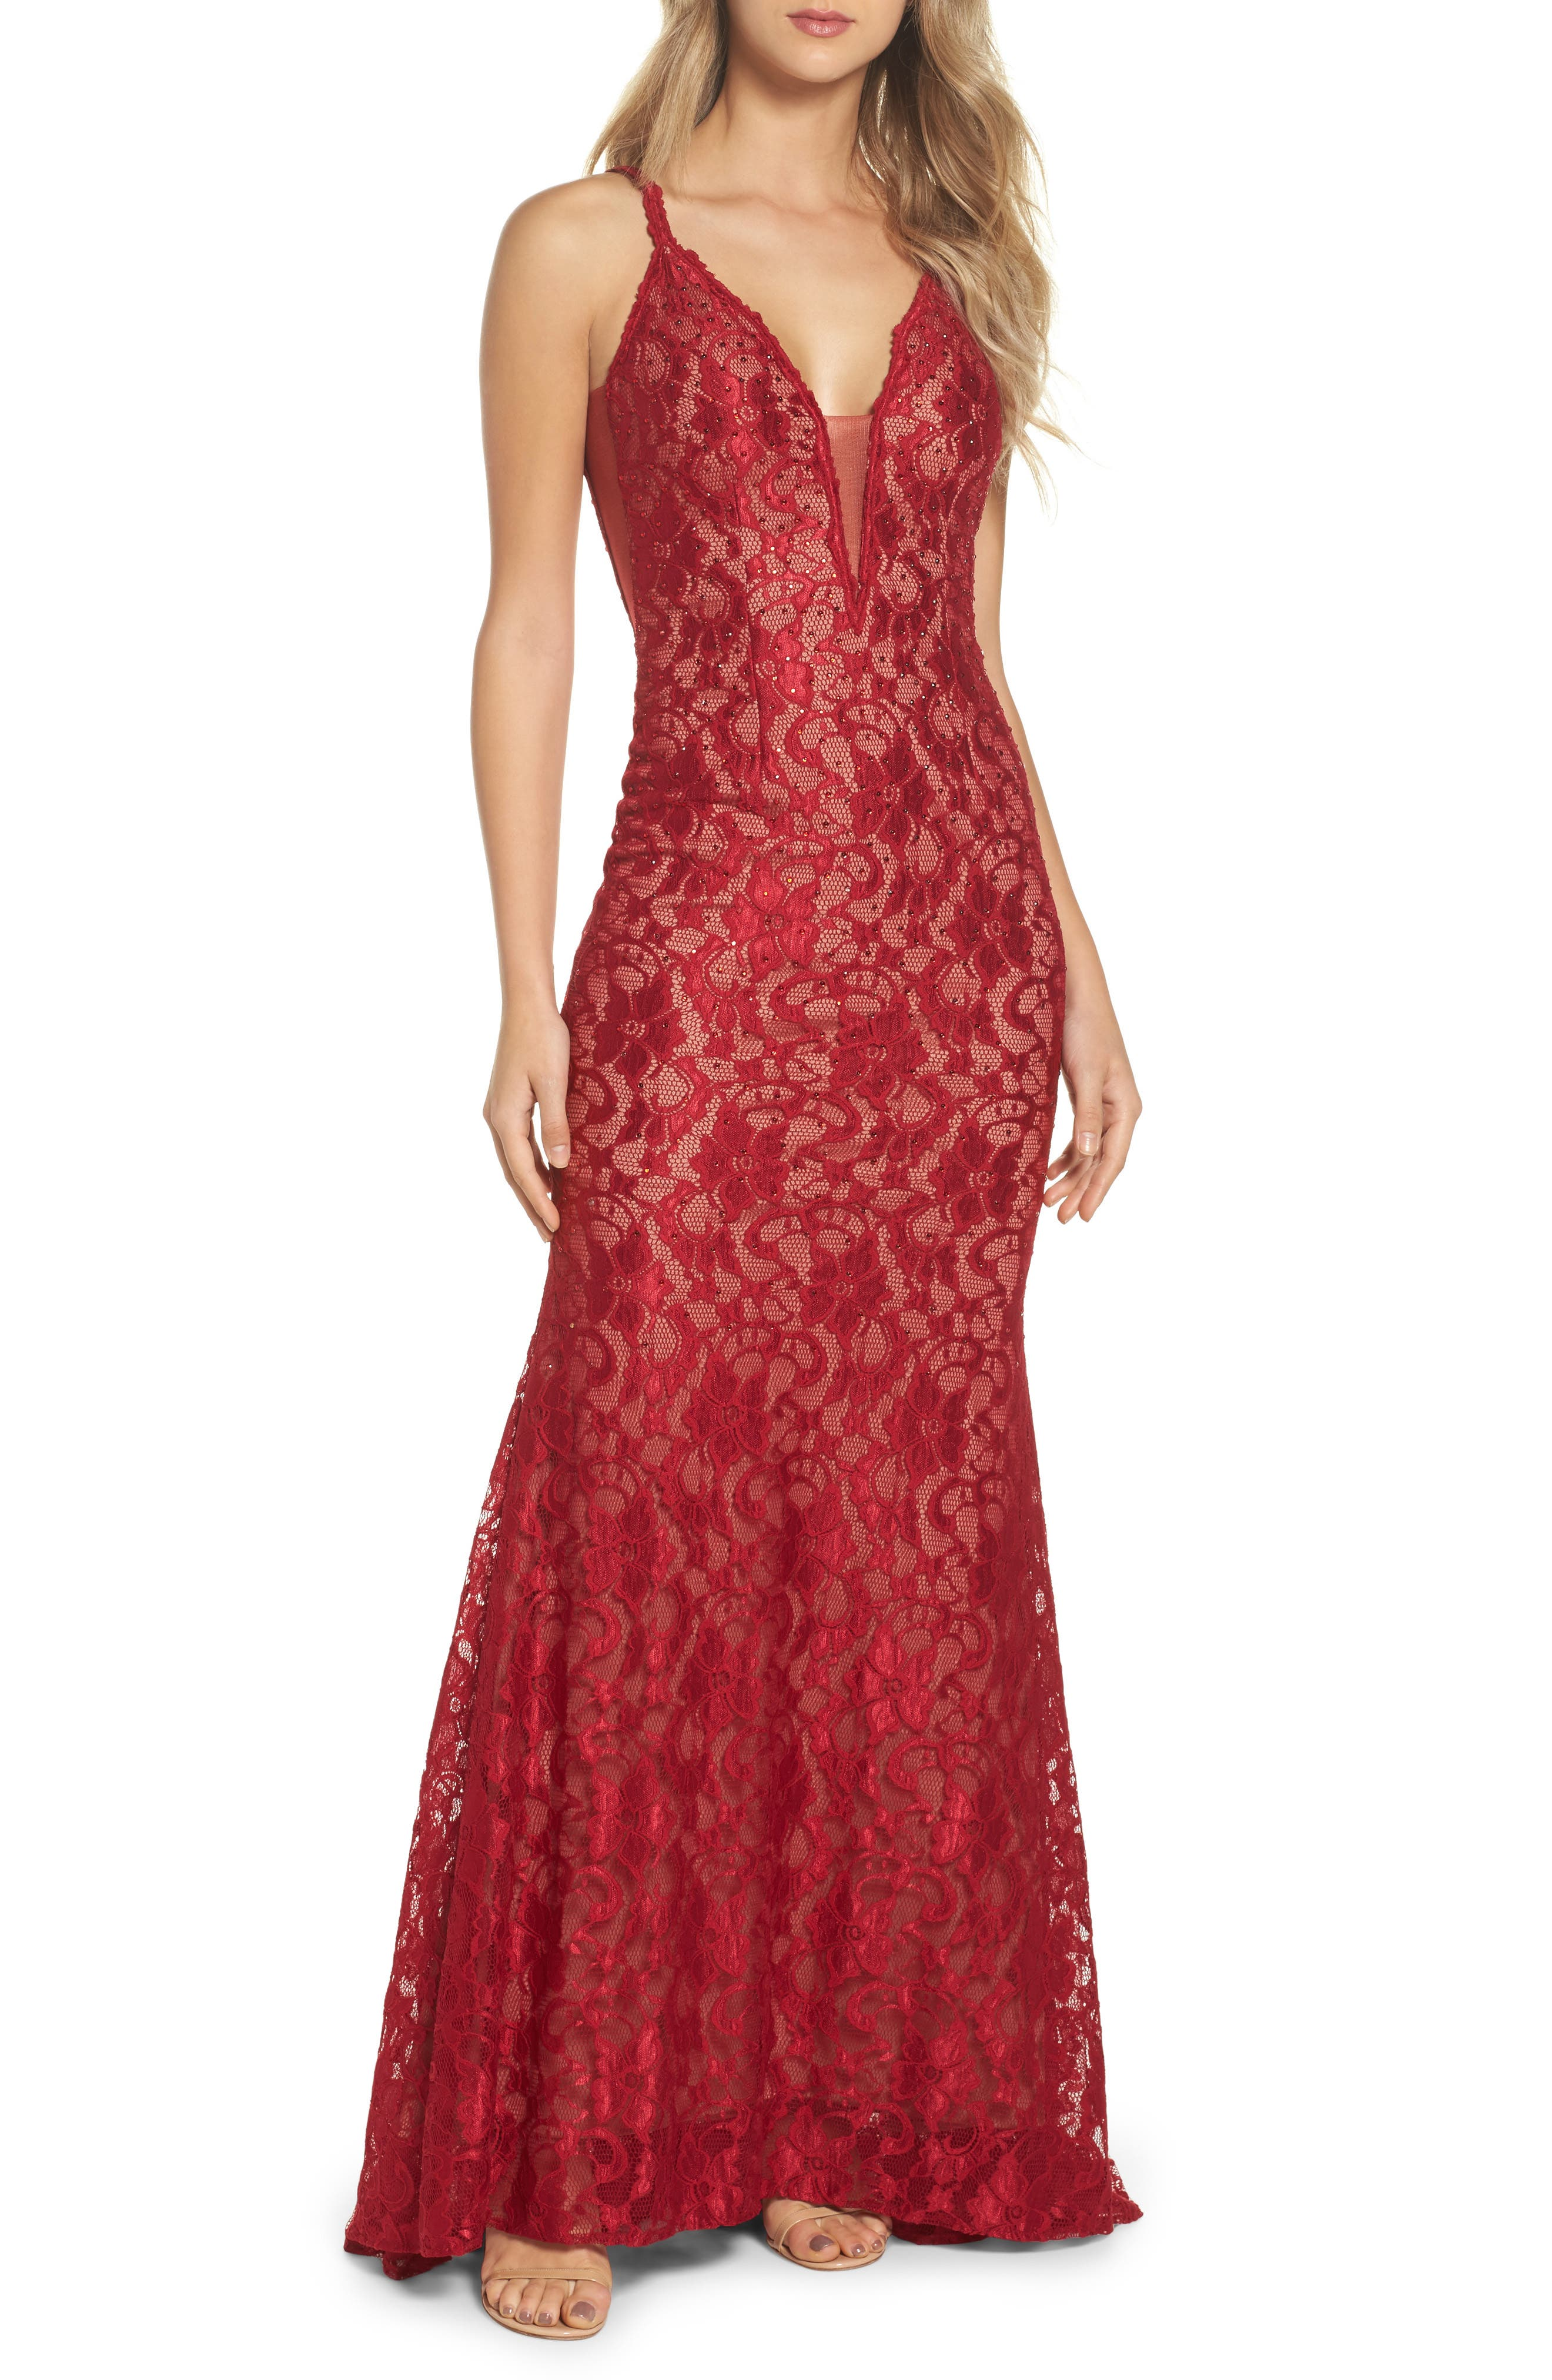 Main Image - Xscape Plunging Beaded Lace Mermaid Gown